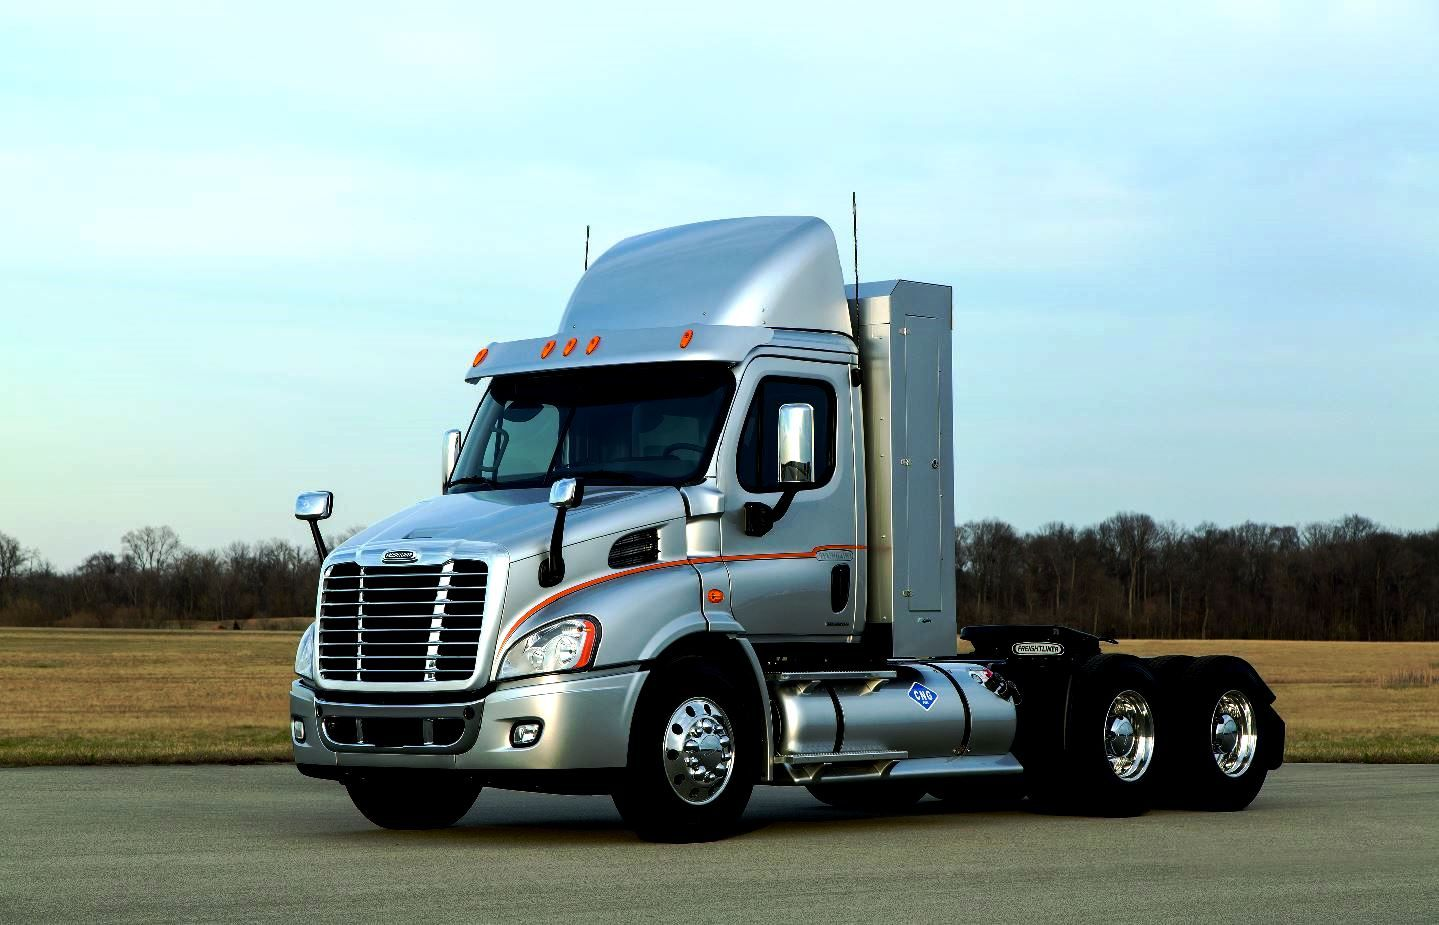 A Beautiful Silver Freightliner Cng Cascadia Day Cab With Roof Fairing From Mats 2013 Vehiculos Camiones Carros Clasicos